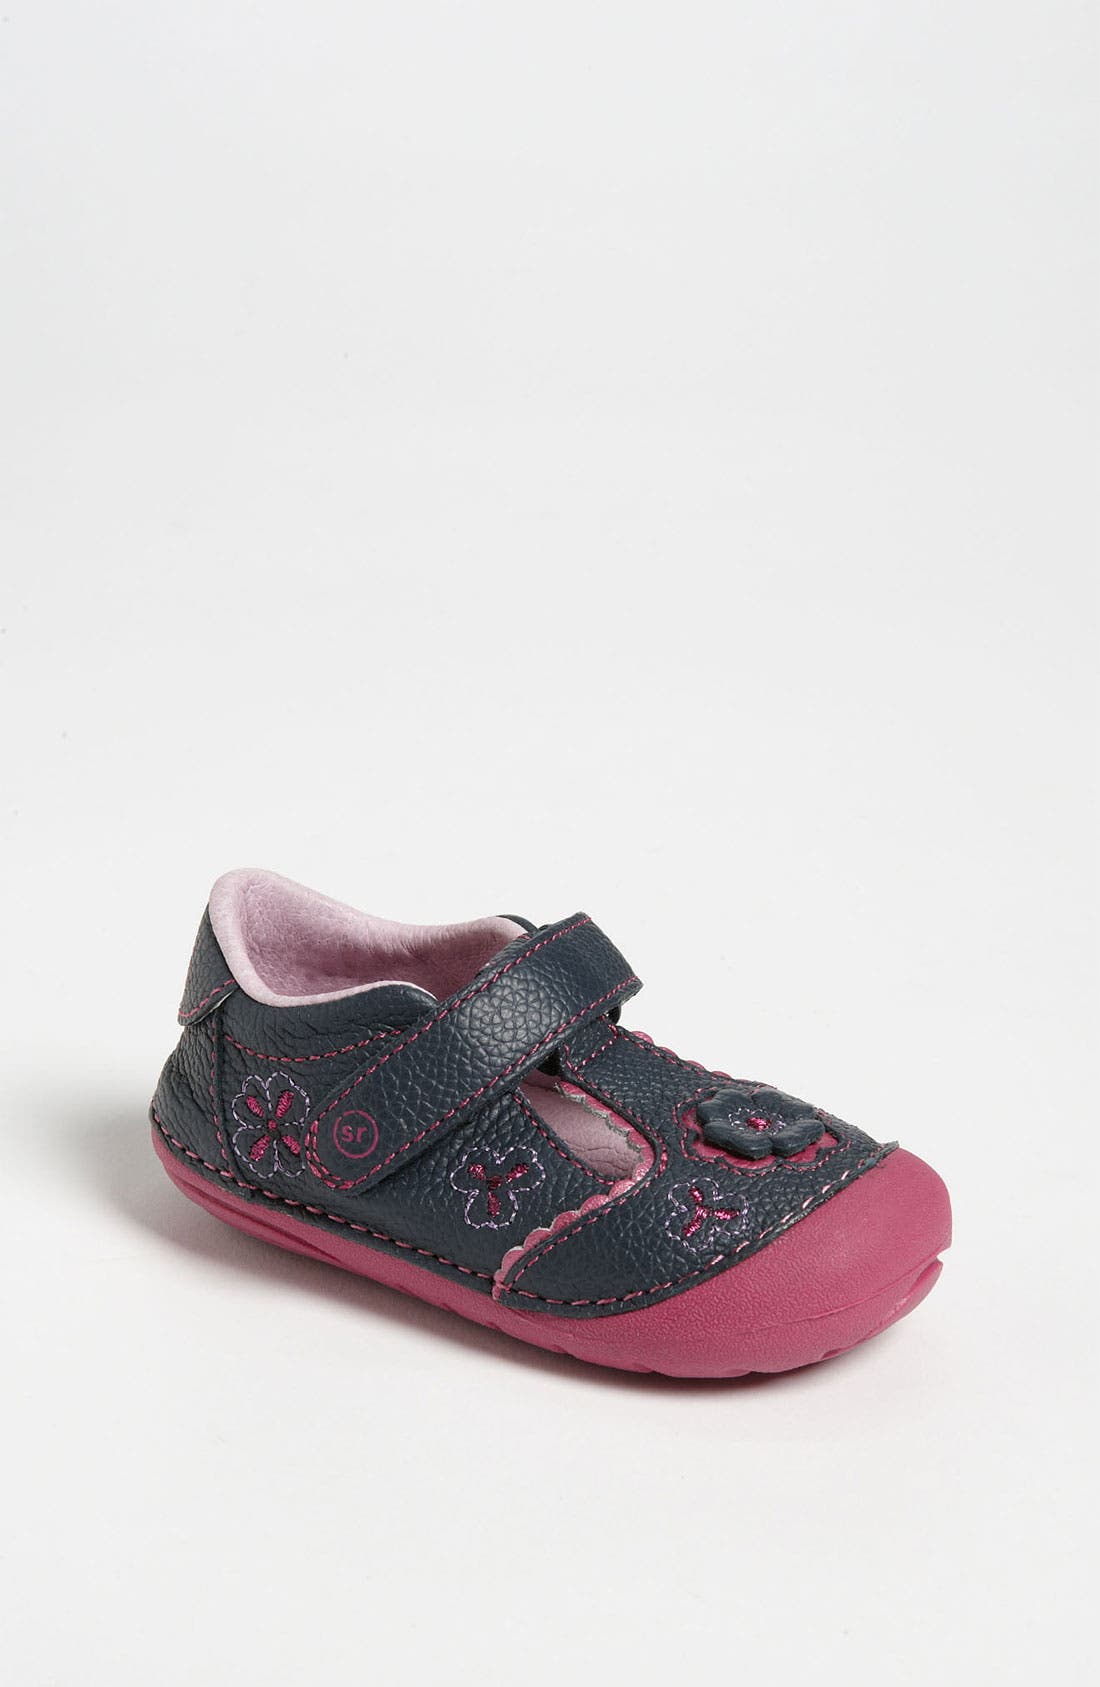 Alternate Image 1 Selected - Stride Rite 'Mae' Sandal (Baby & Walker)